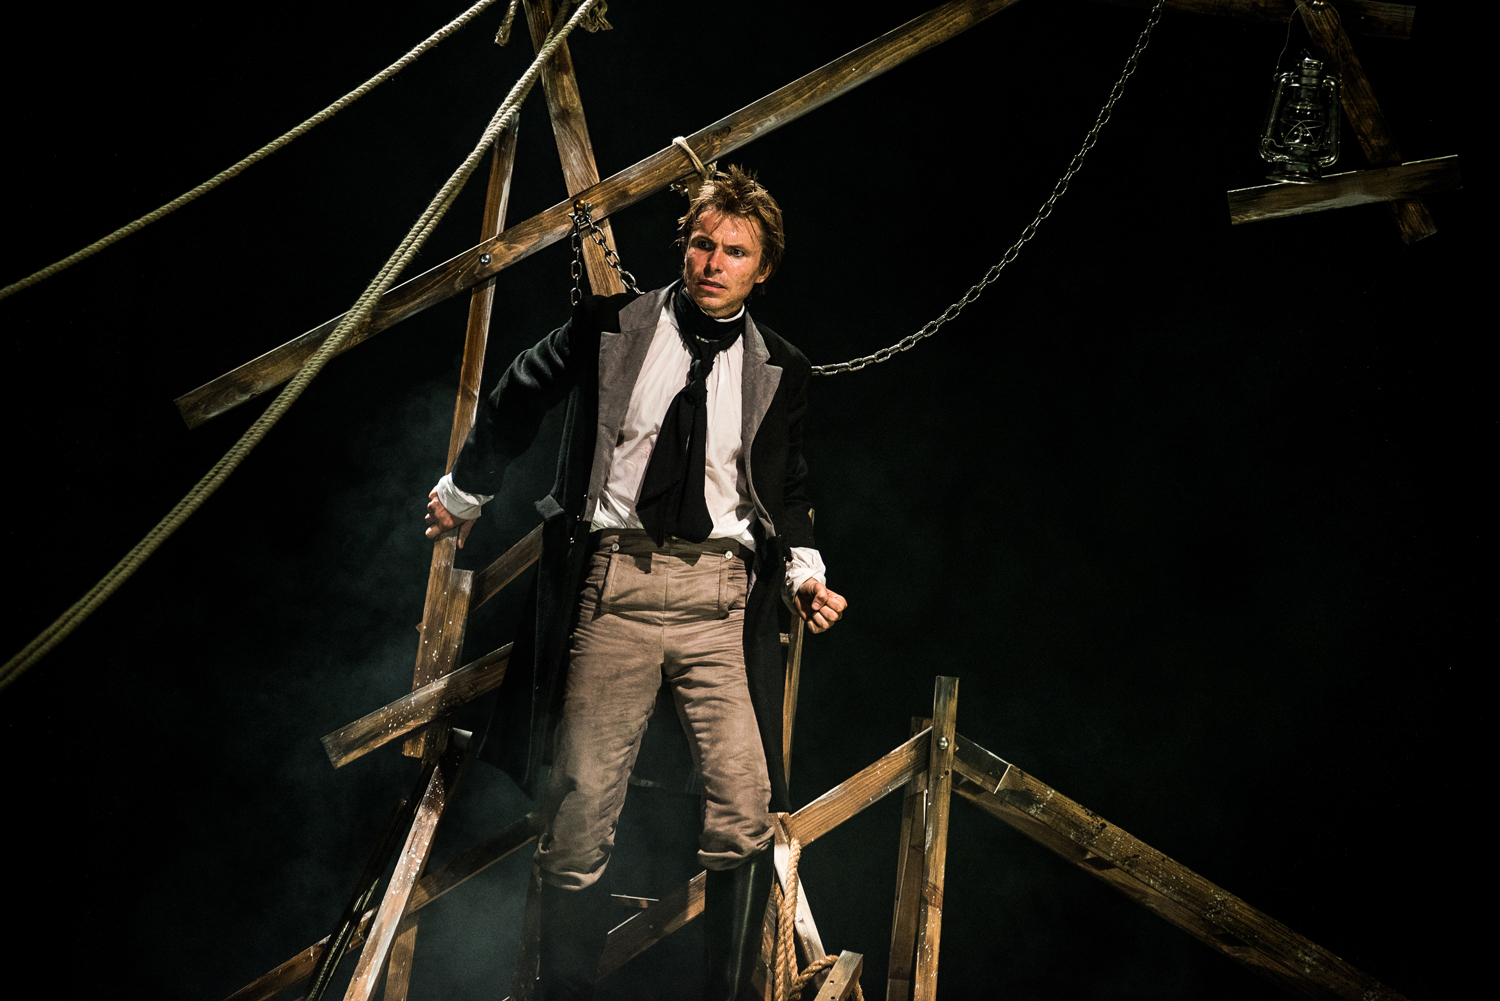 """There are two obvious essentials for a successful production – Victor Frankenstein himself and his Creature. Ben Warwick is a commanding presence as Frankenstein, playing the deity-defying scientist with a gripping, ever-increasing intensity as his life unravels…the production is powered by the electricity of Warwick's central performance."""